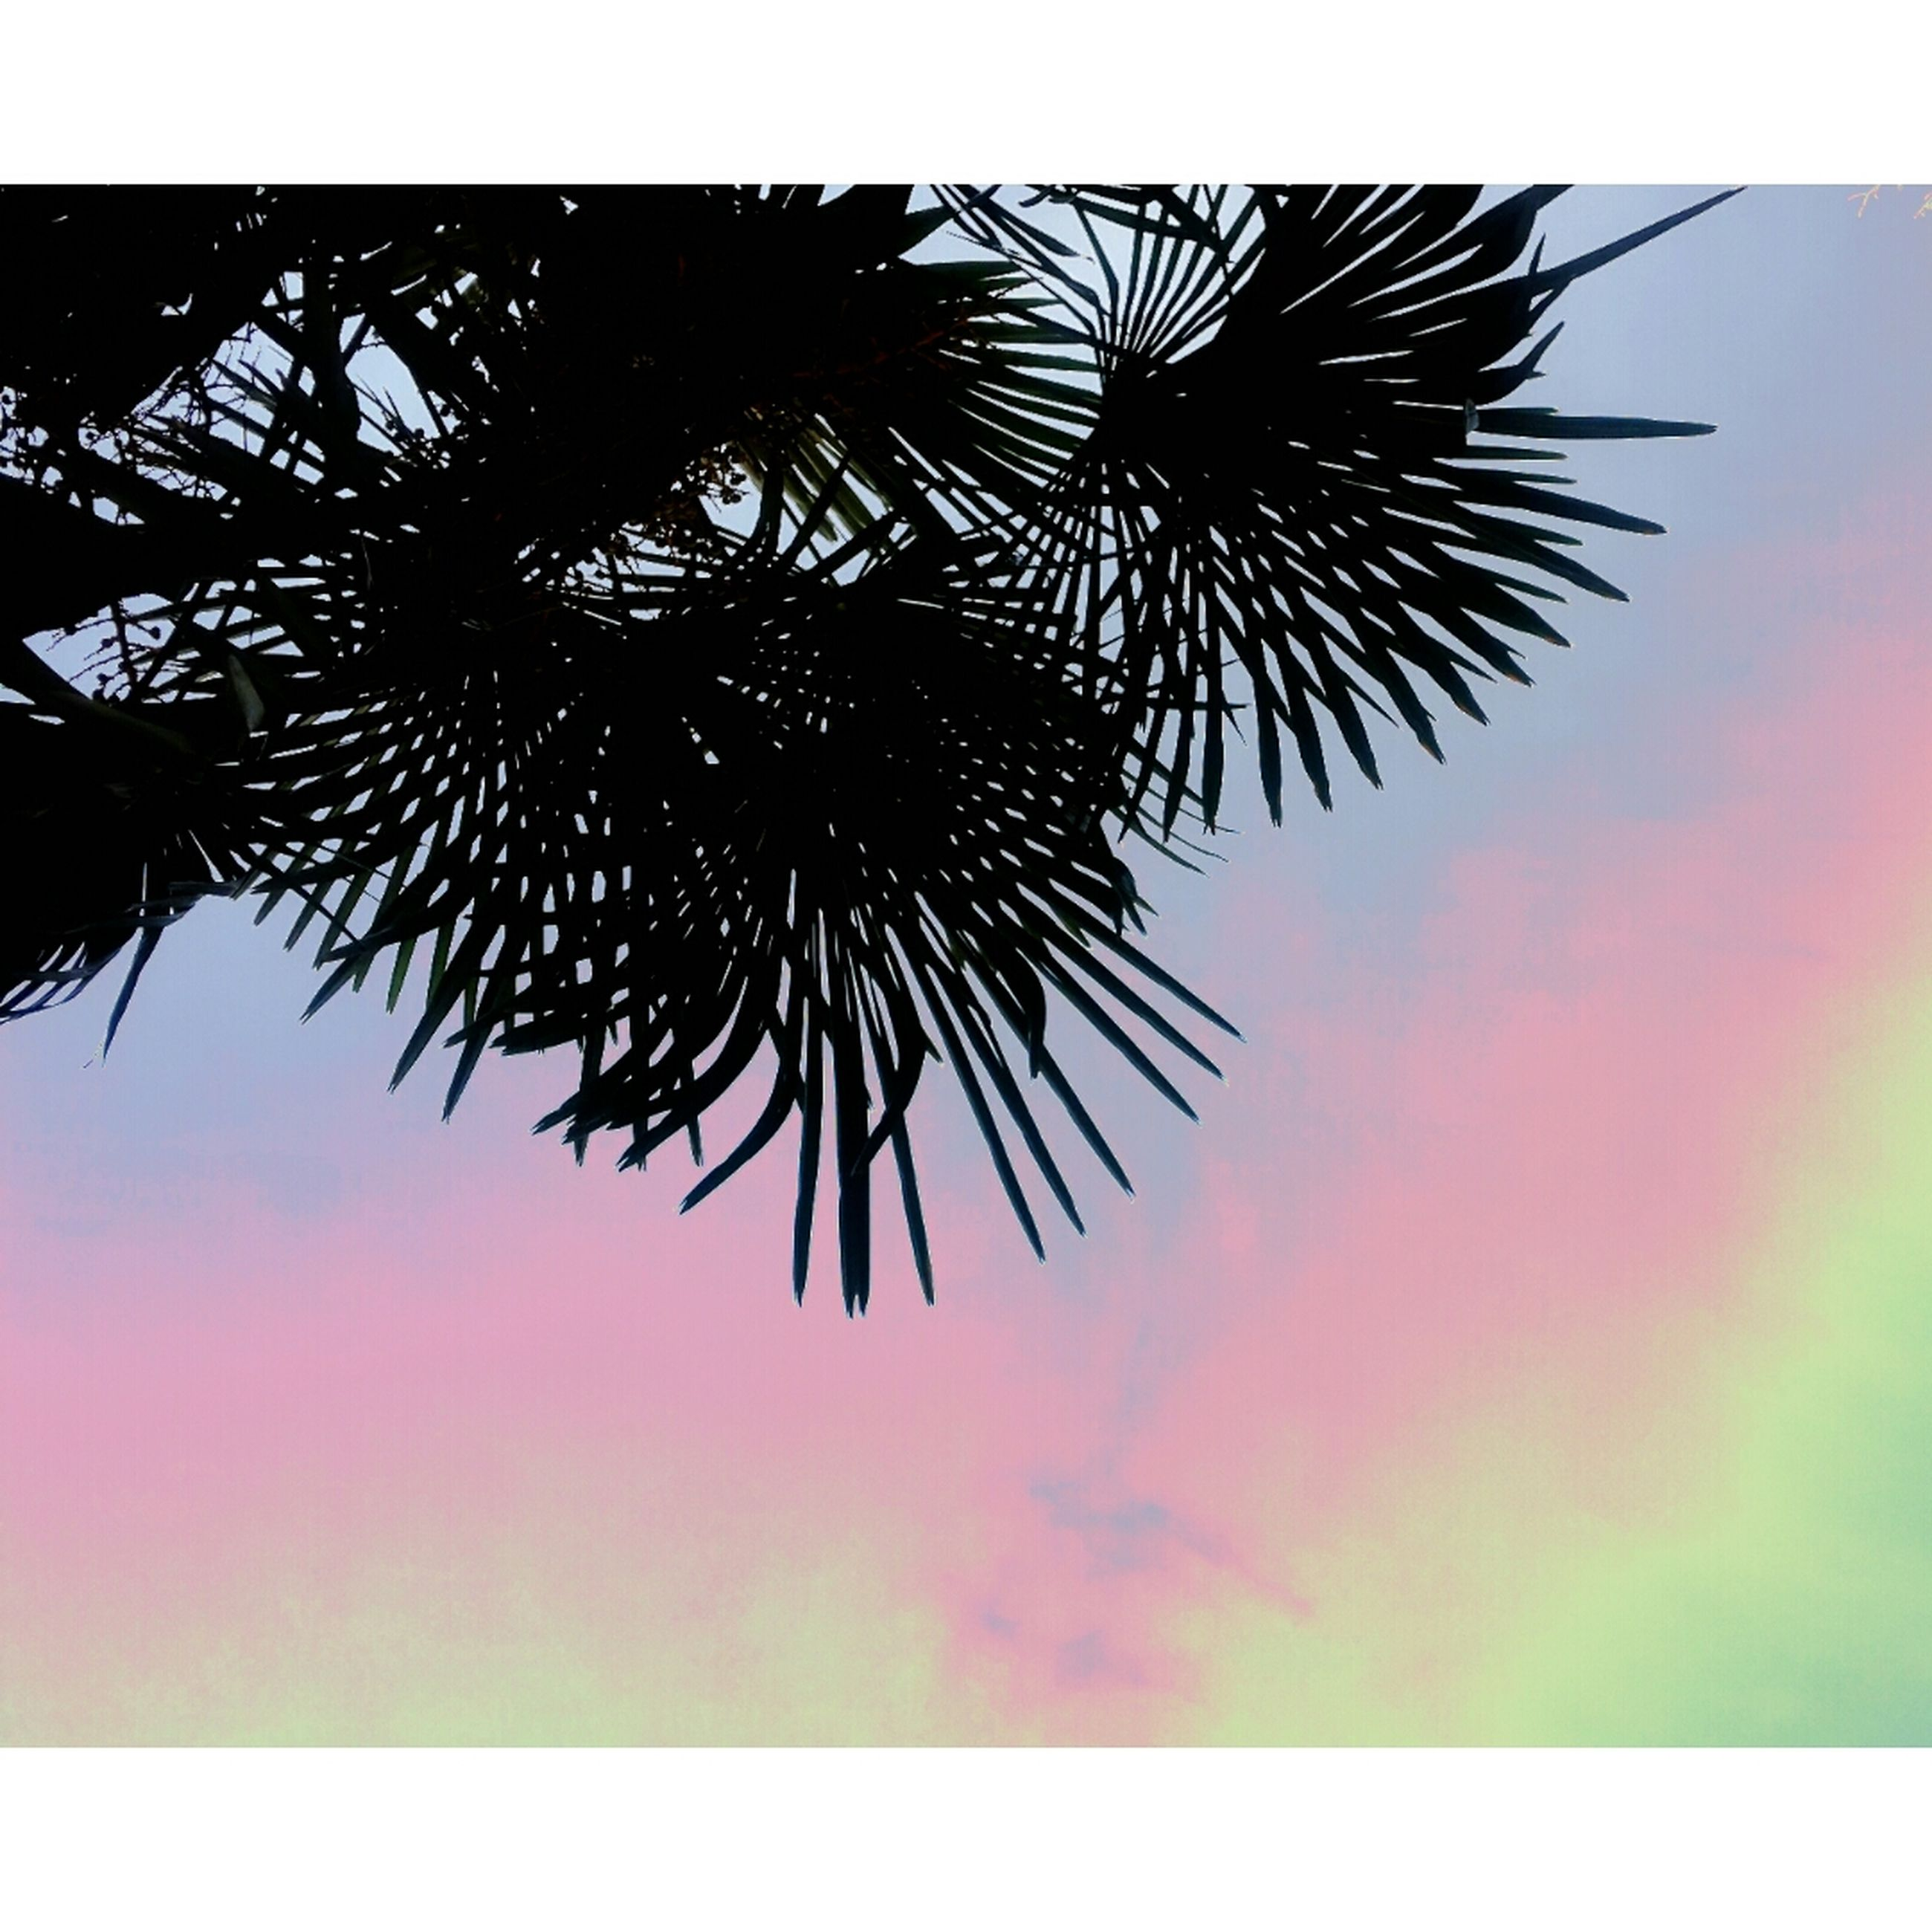 low angle view, sky, silhouette, nature, beauty in nature, growth, auto post production filter, tree, leaf, sunset, outdoors, no people, palm tree, transfer print, tranquility, backgrounds, clear sky, branch, dusk, close-up